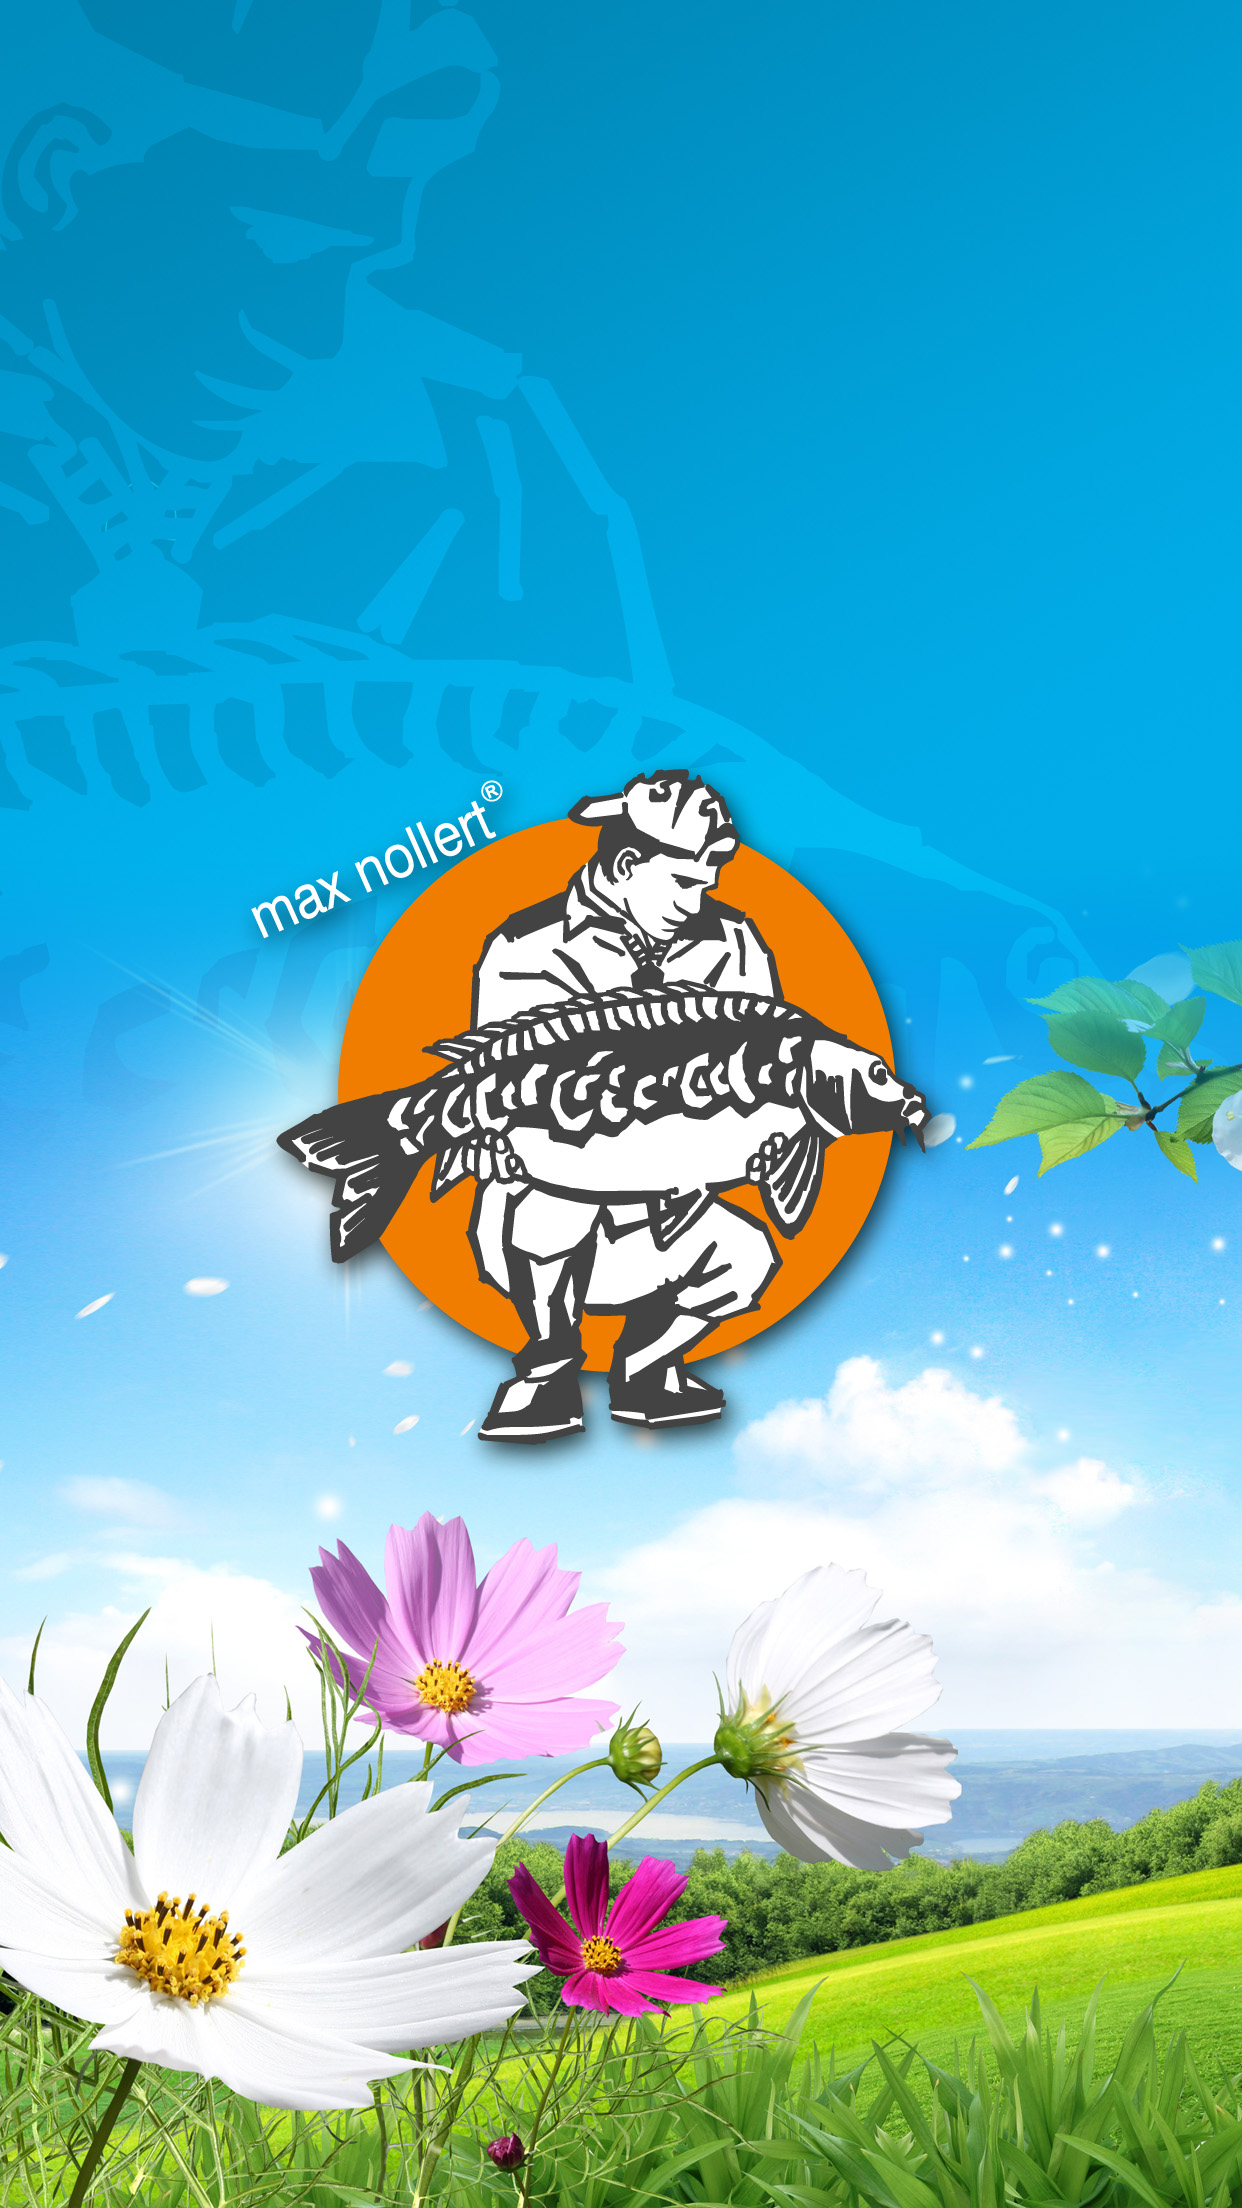 Wallpaper iblog by imperial fishing - Carp wallpaper iphone ...